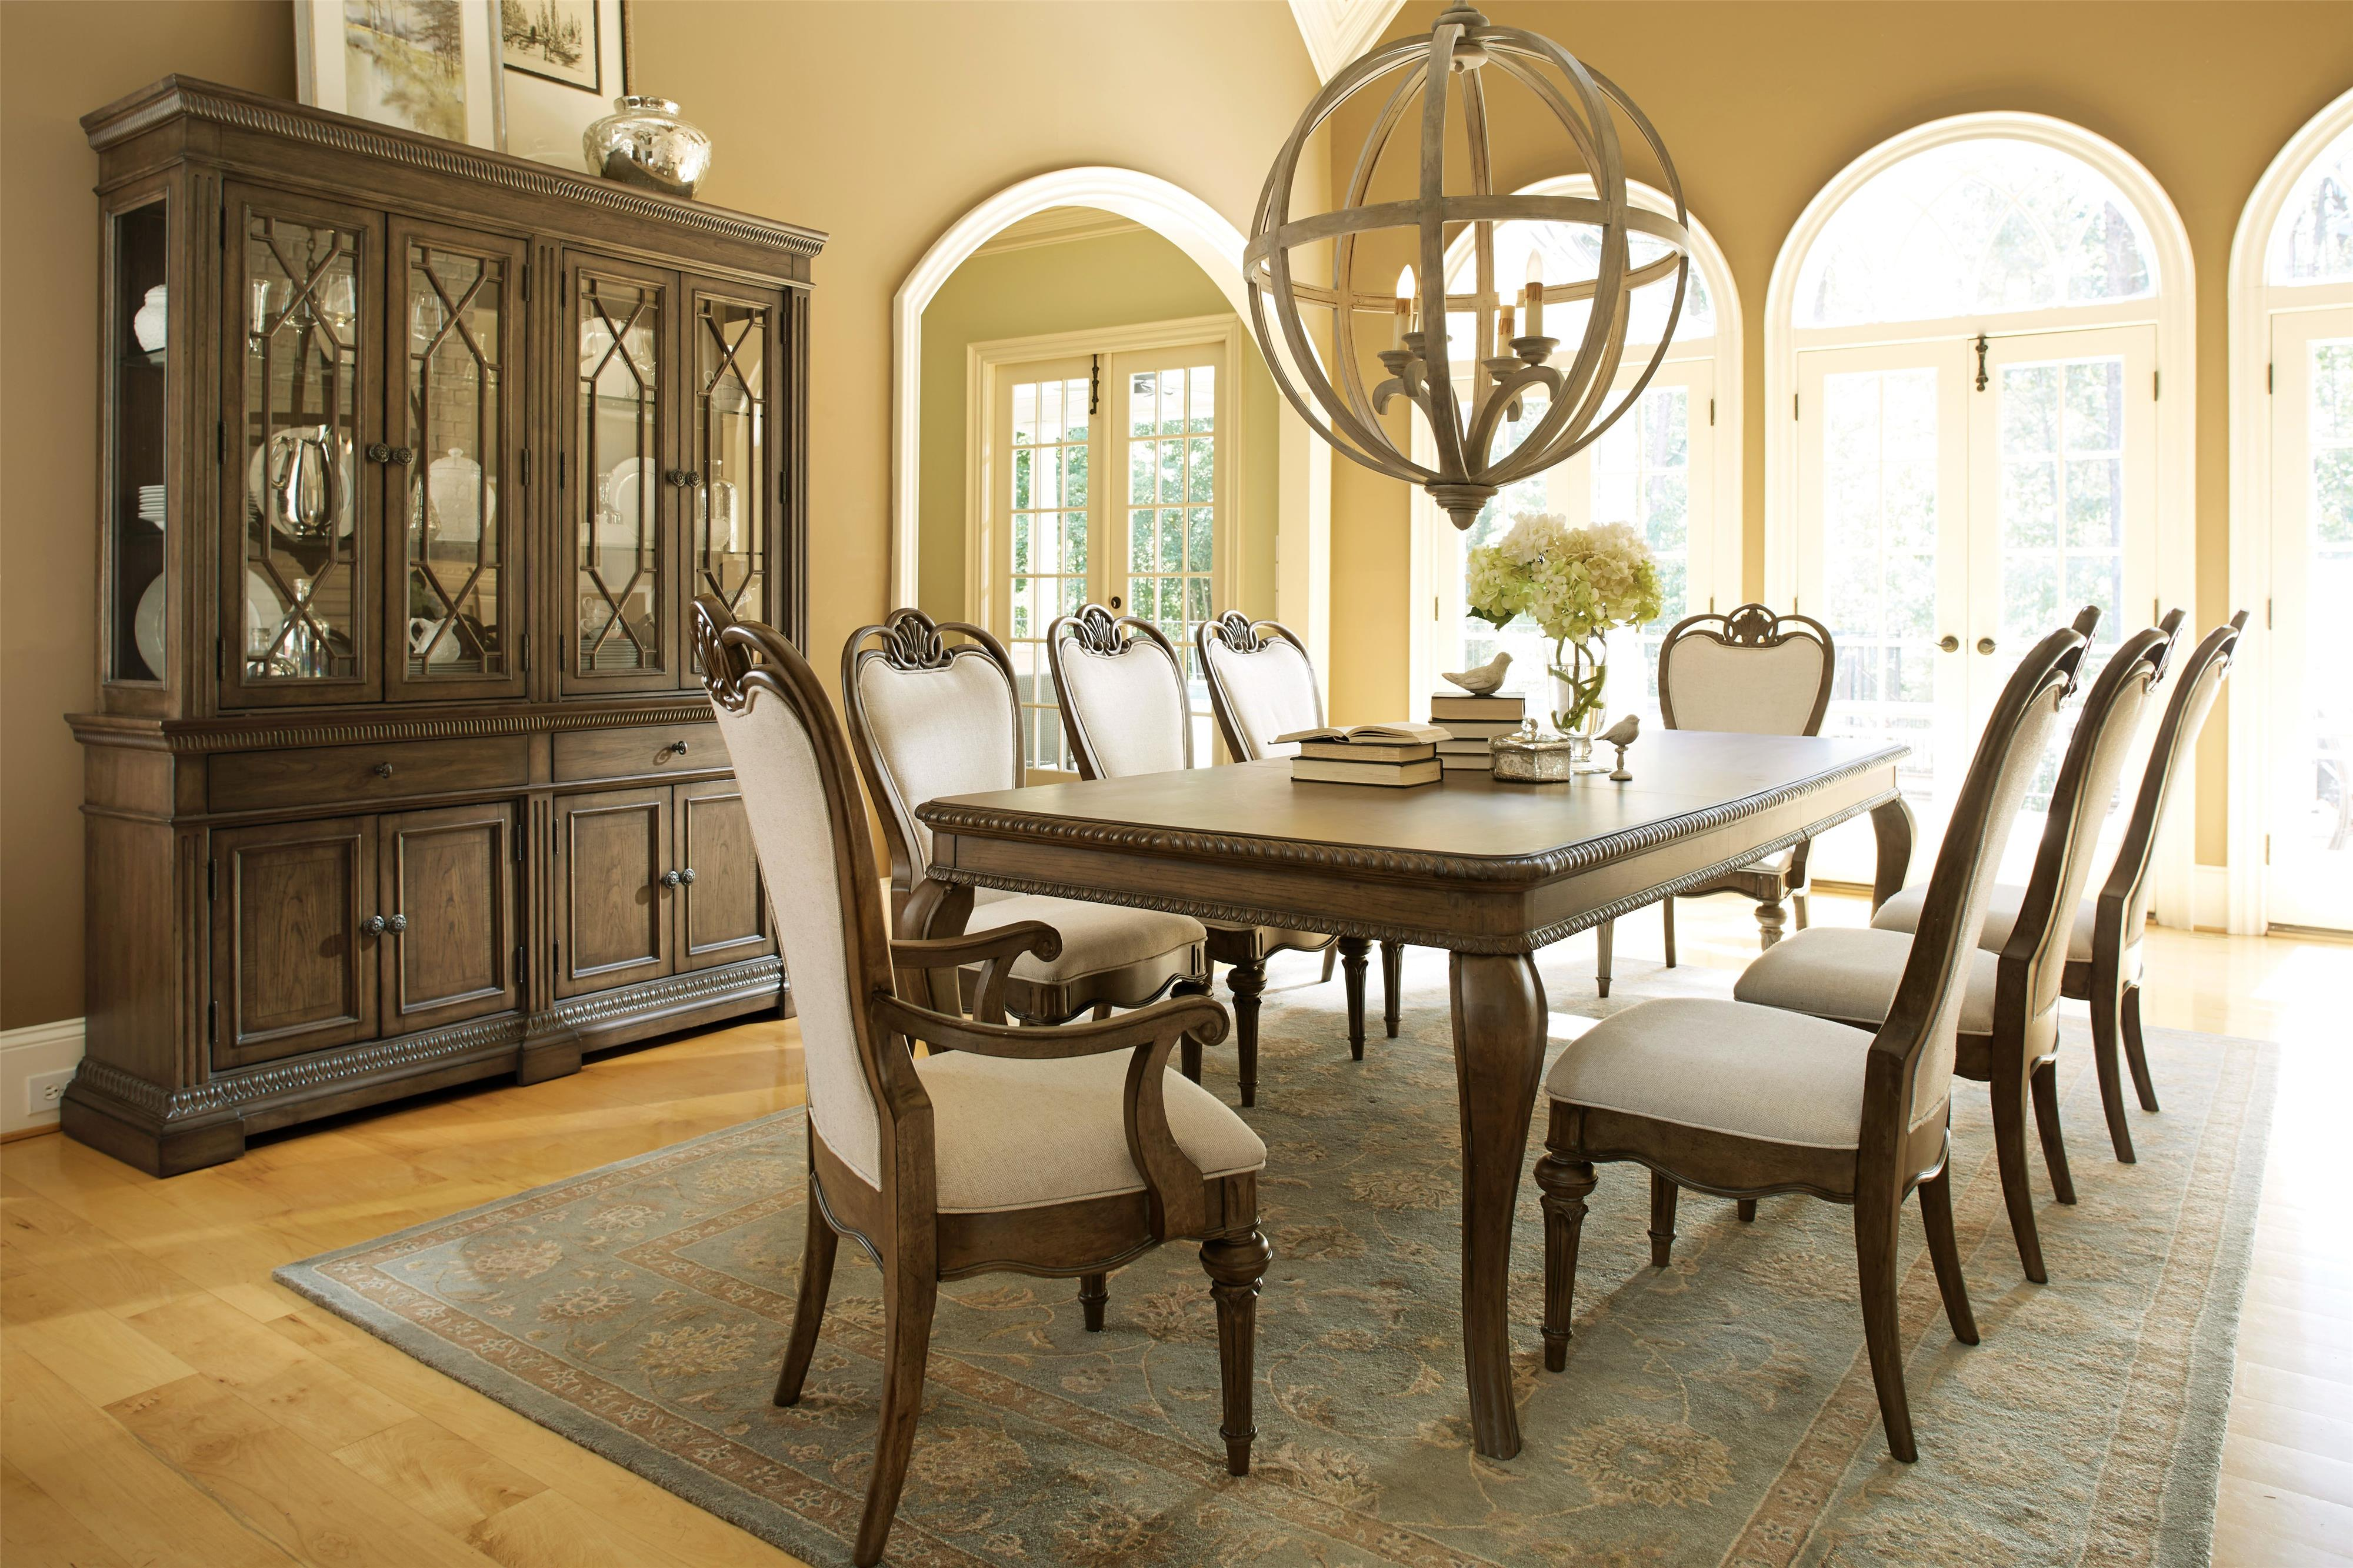 Legacy Classic Renaissance Formal Dining Room Group 1 - Item Number: 5500 Dining Room Group 1